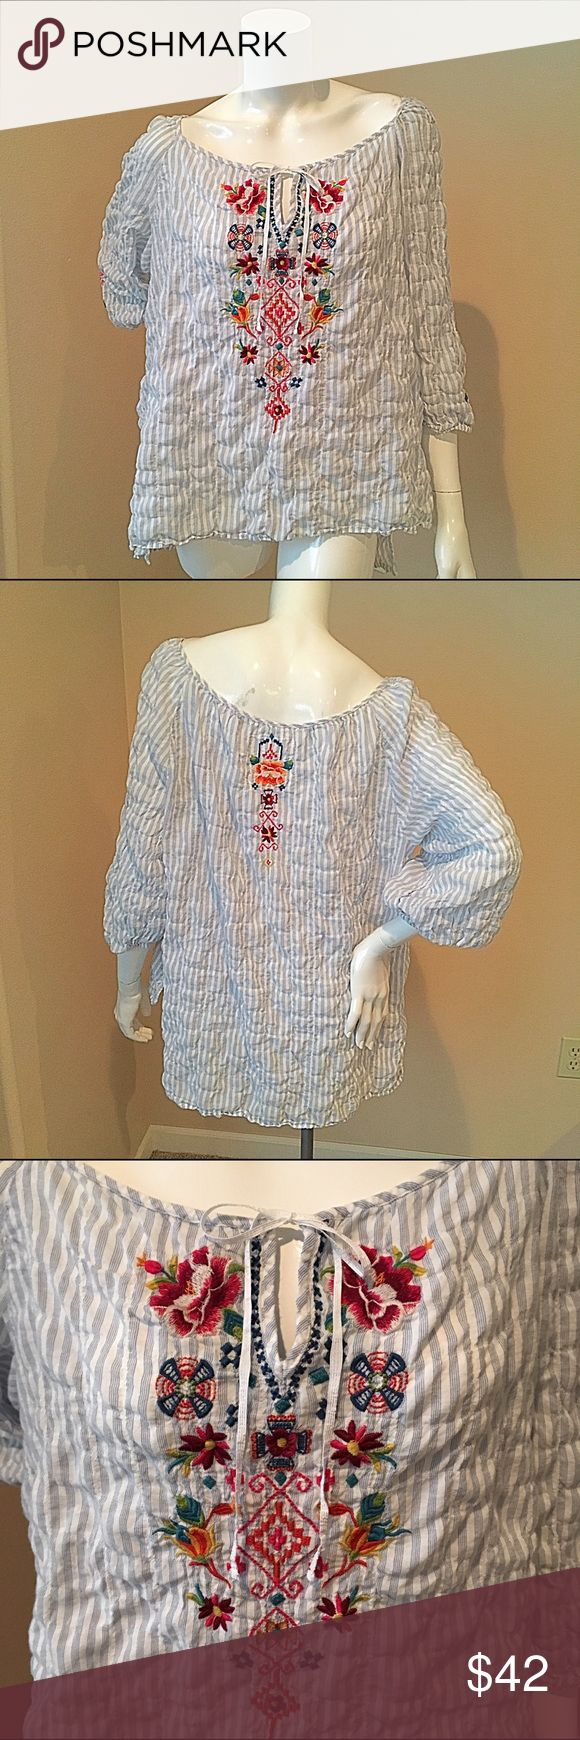 Johnny Was XL puckered peasant embroidered blouse Johnny Was extra large puckered striped embroidered peasant blouse. 44% rayon 55% cotton 1% spandex. Bust 21 inches, sleeve 17 inches, length 25 inches. Johnny Was Tops Blouses